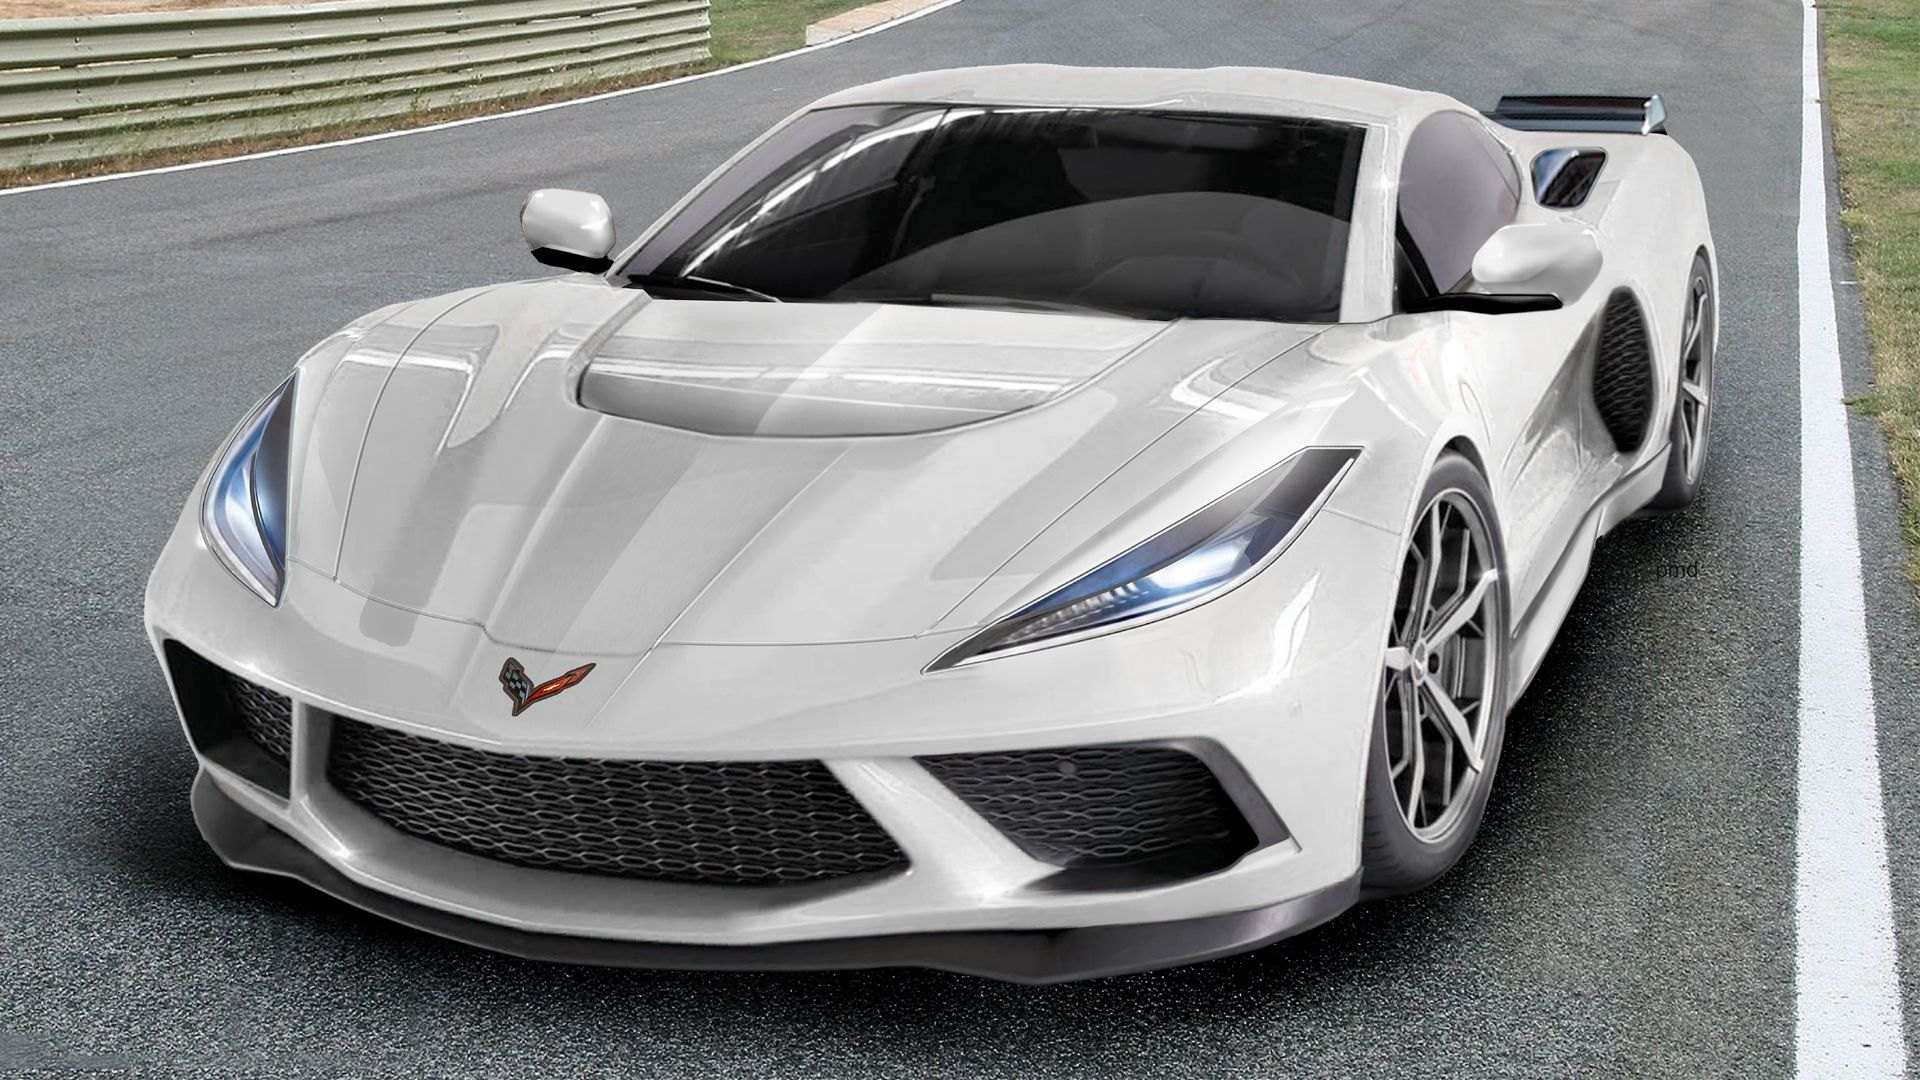 68 Concept of 2020 Corvette Stingray Concept with 2020 Corvette Stingray